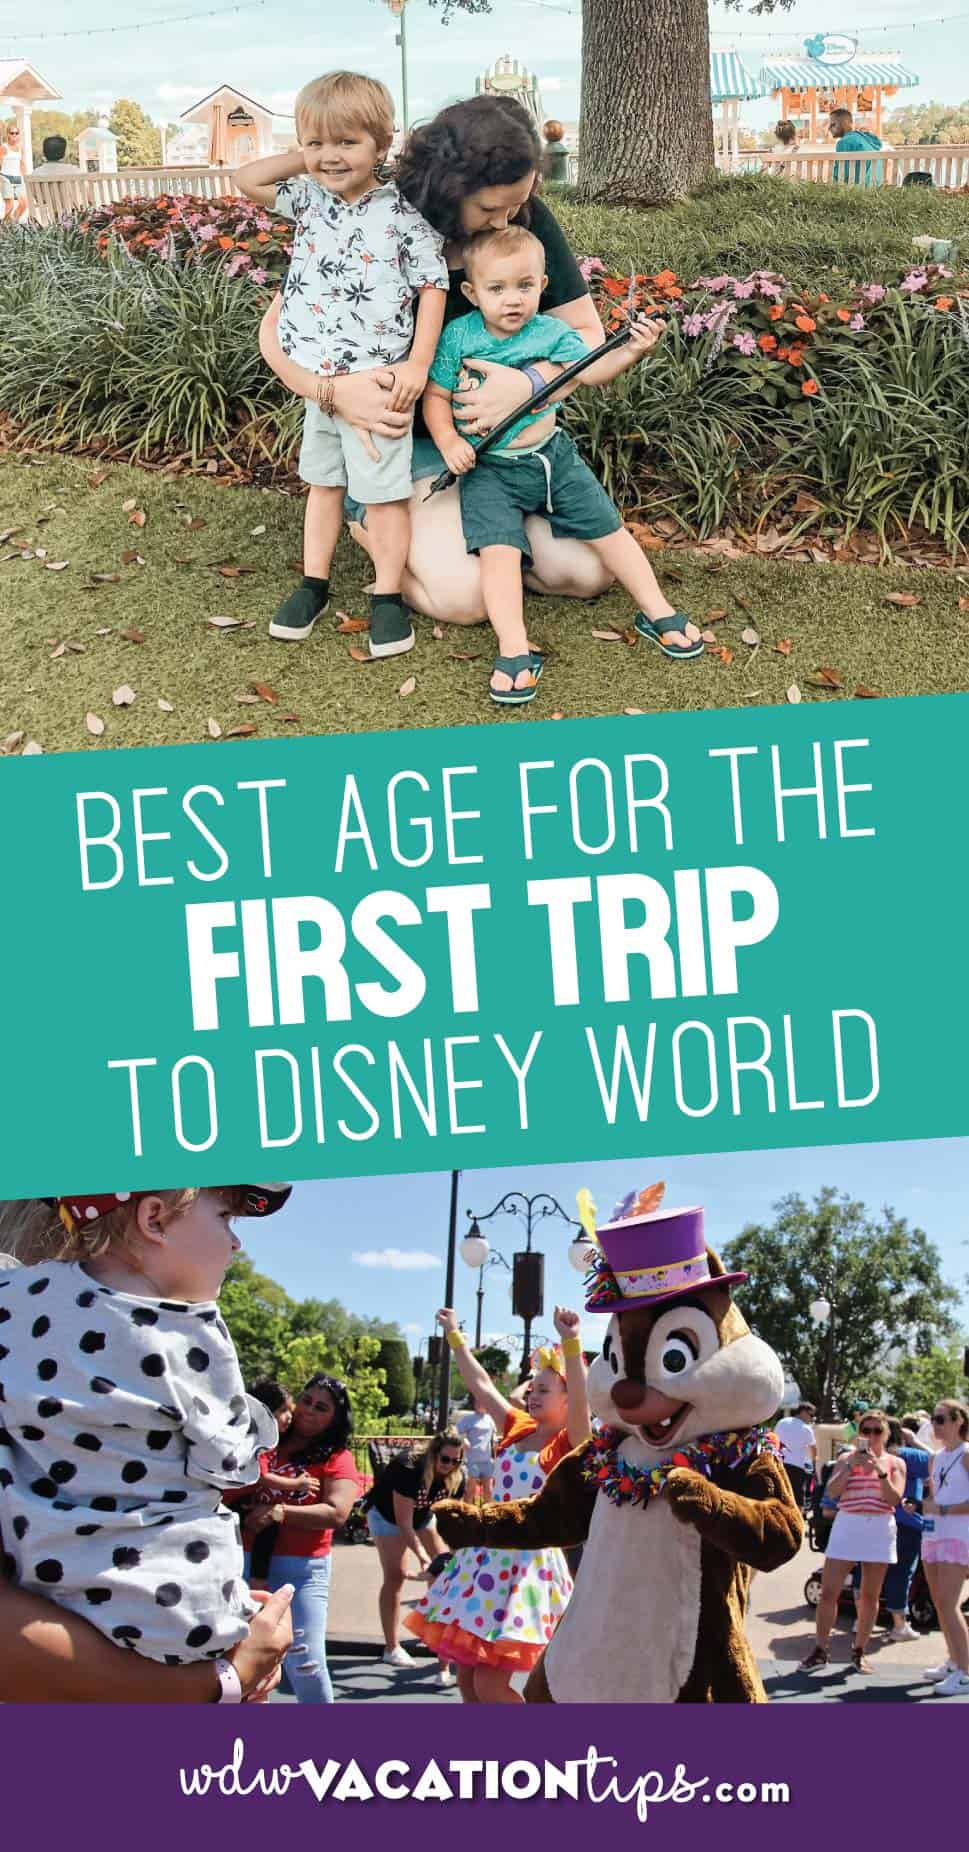 Best Time for First Trip to Disney World